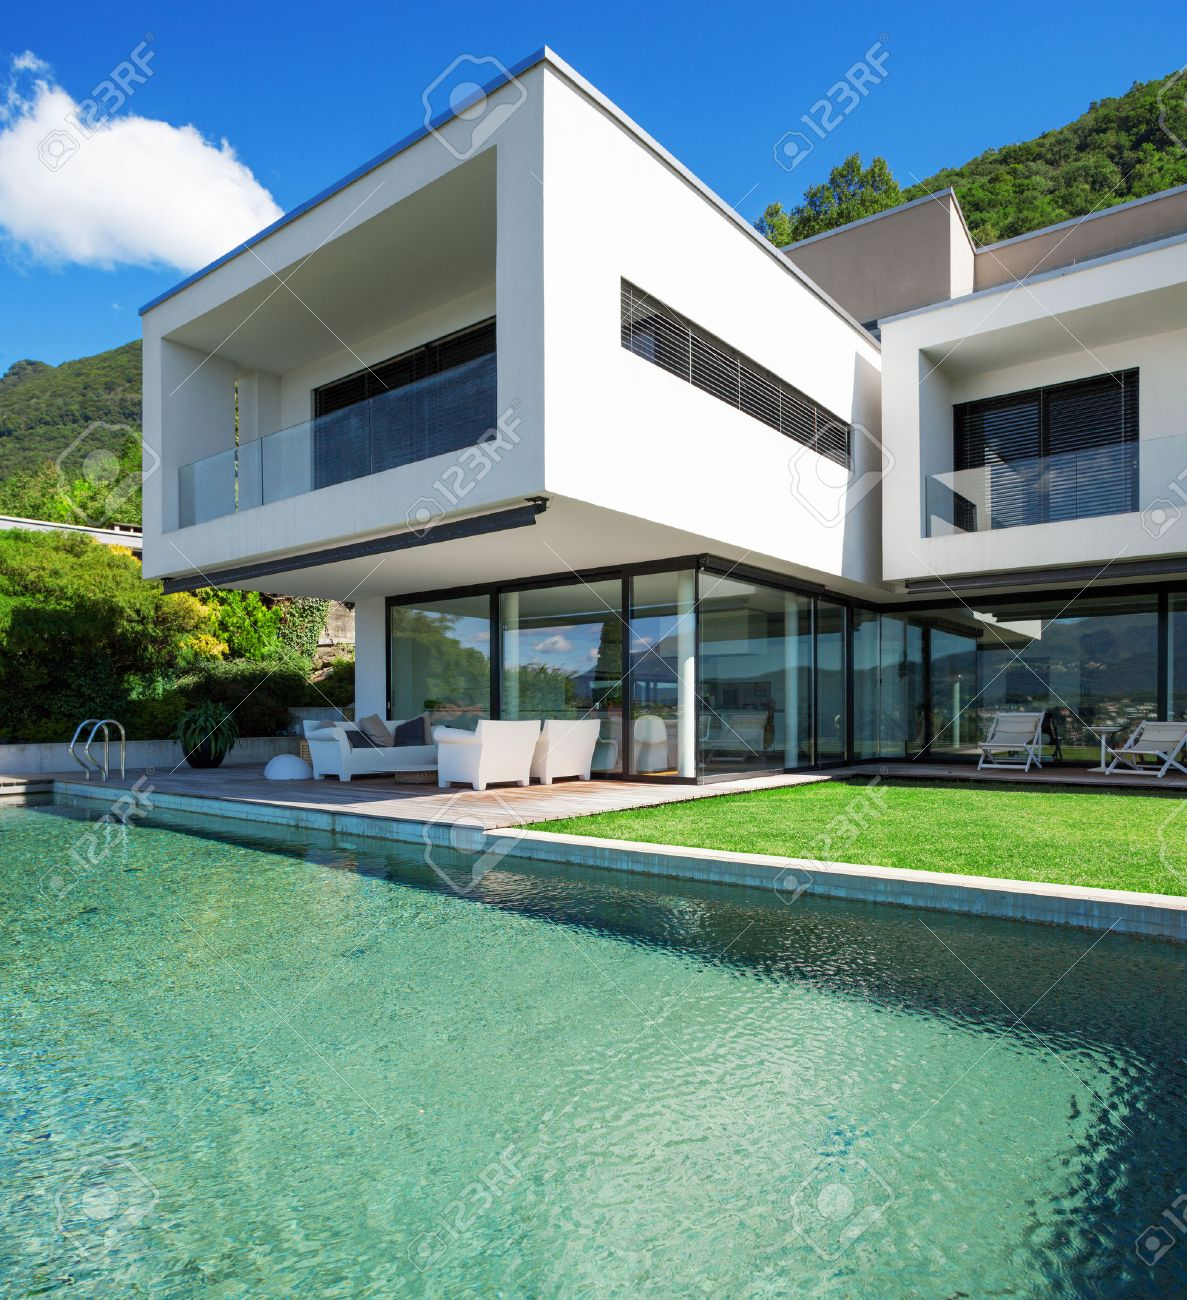 Modern House With Pool In xterior Stock Photo, Picture nd ... - ^